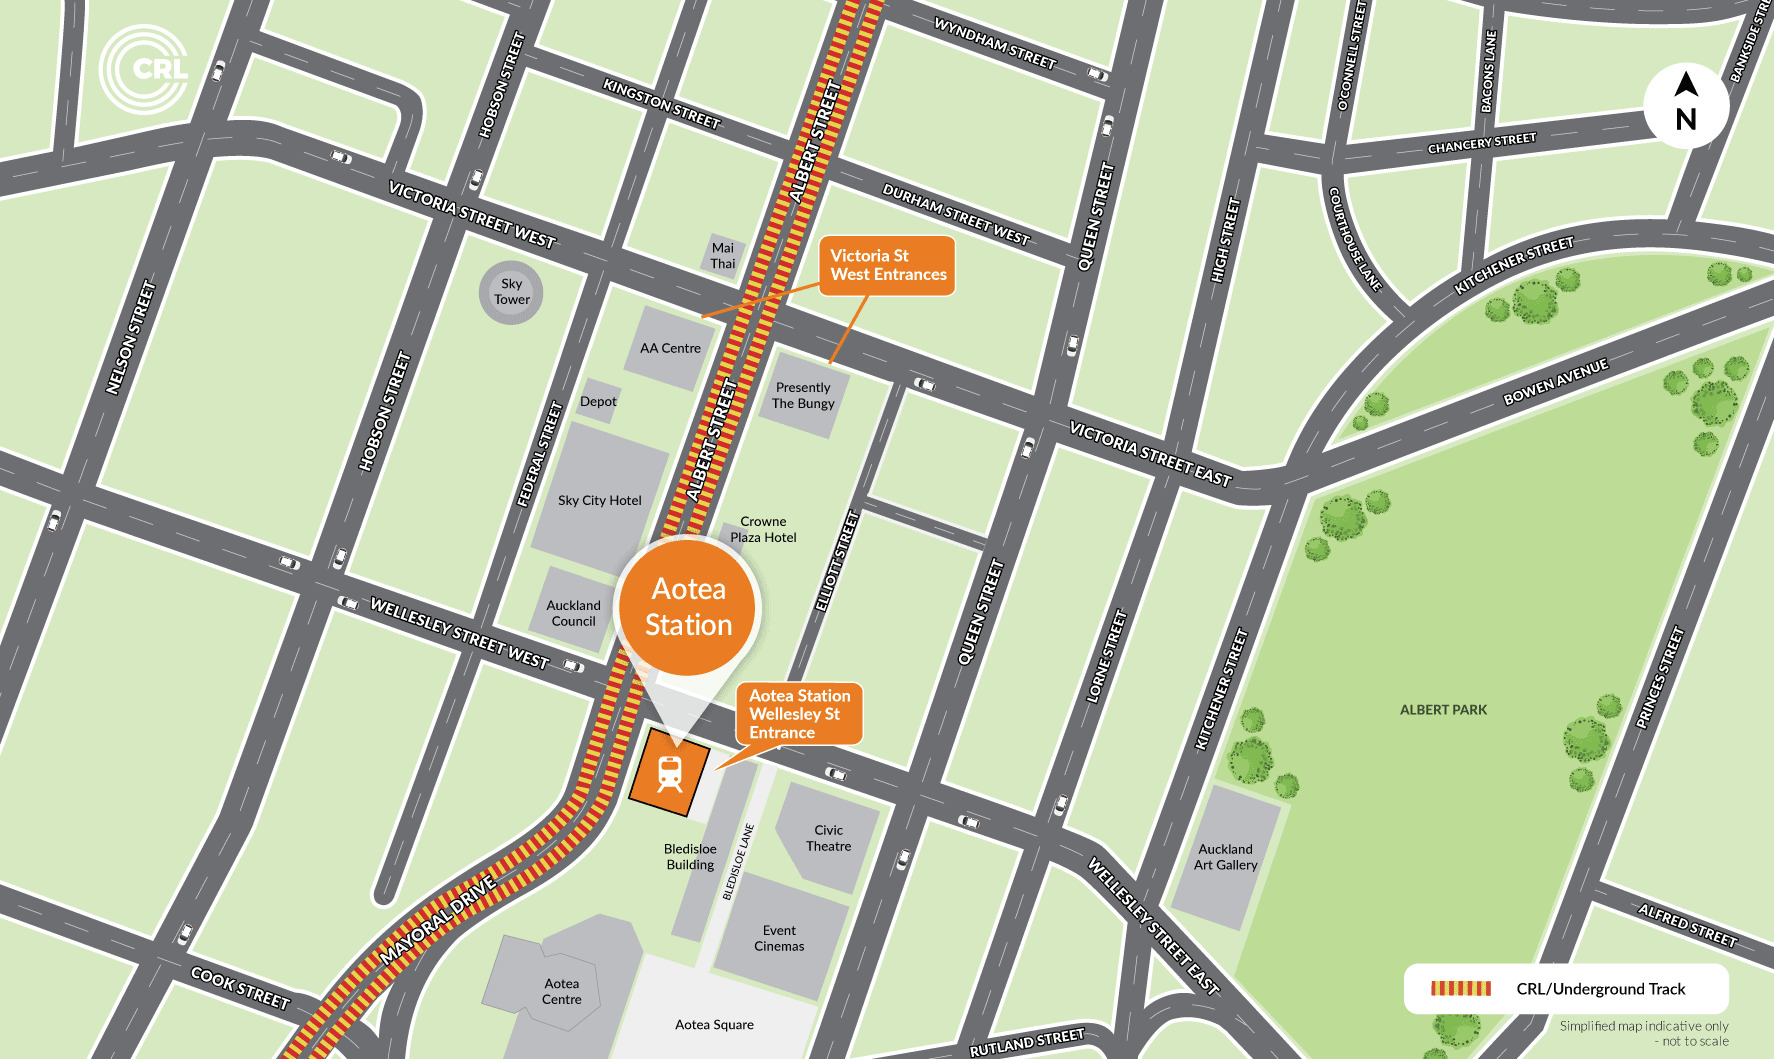 Map showing location of Aotea Station and surrounds